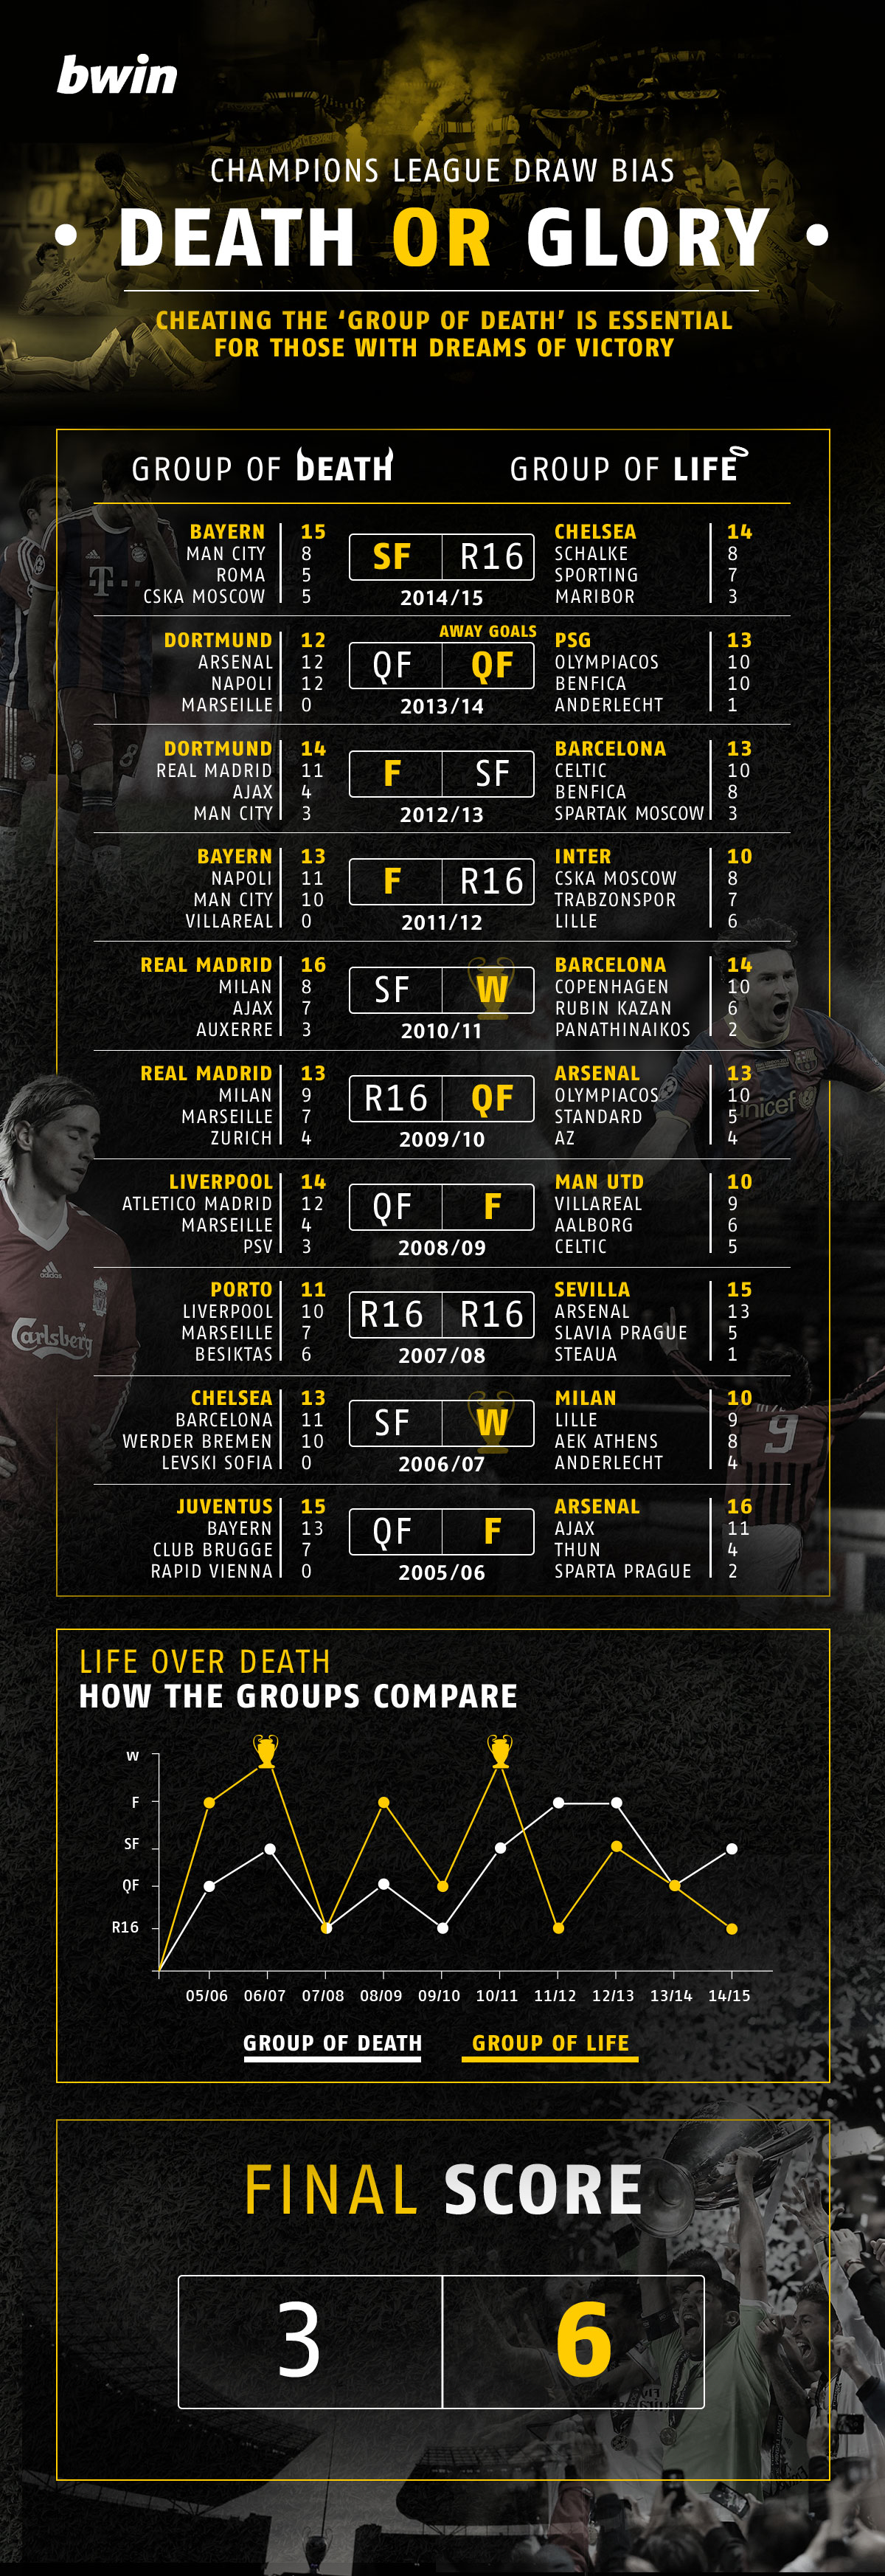 How teams in Champions League groups of death perform compared to those in easy groups